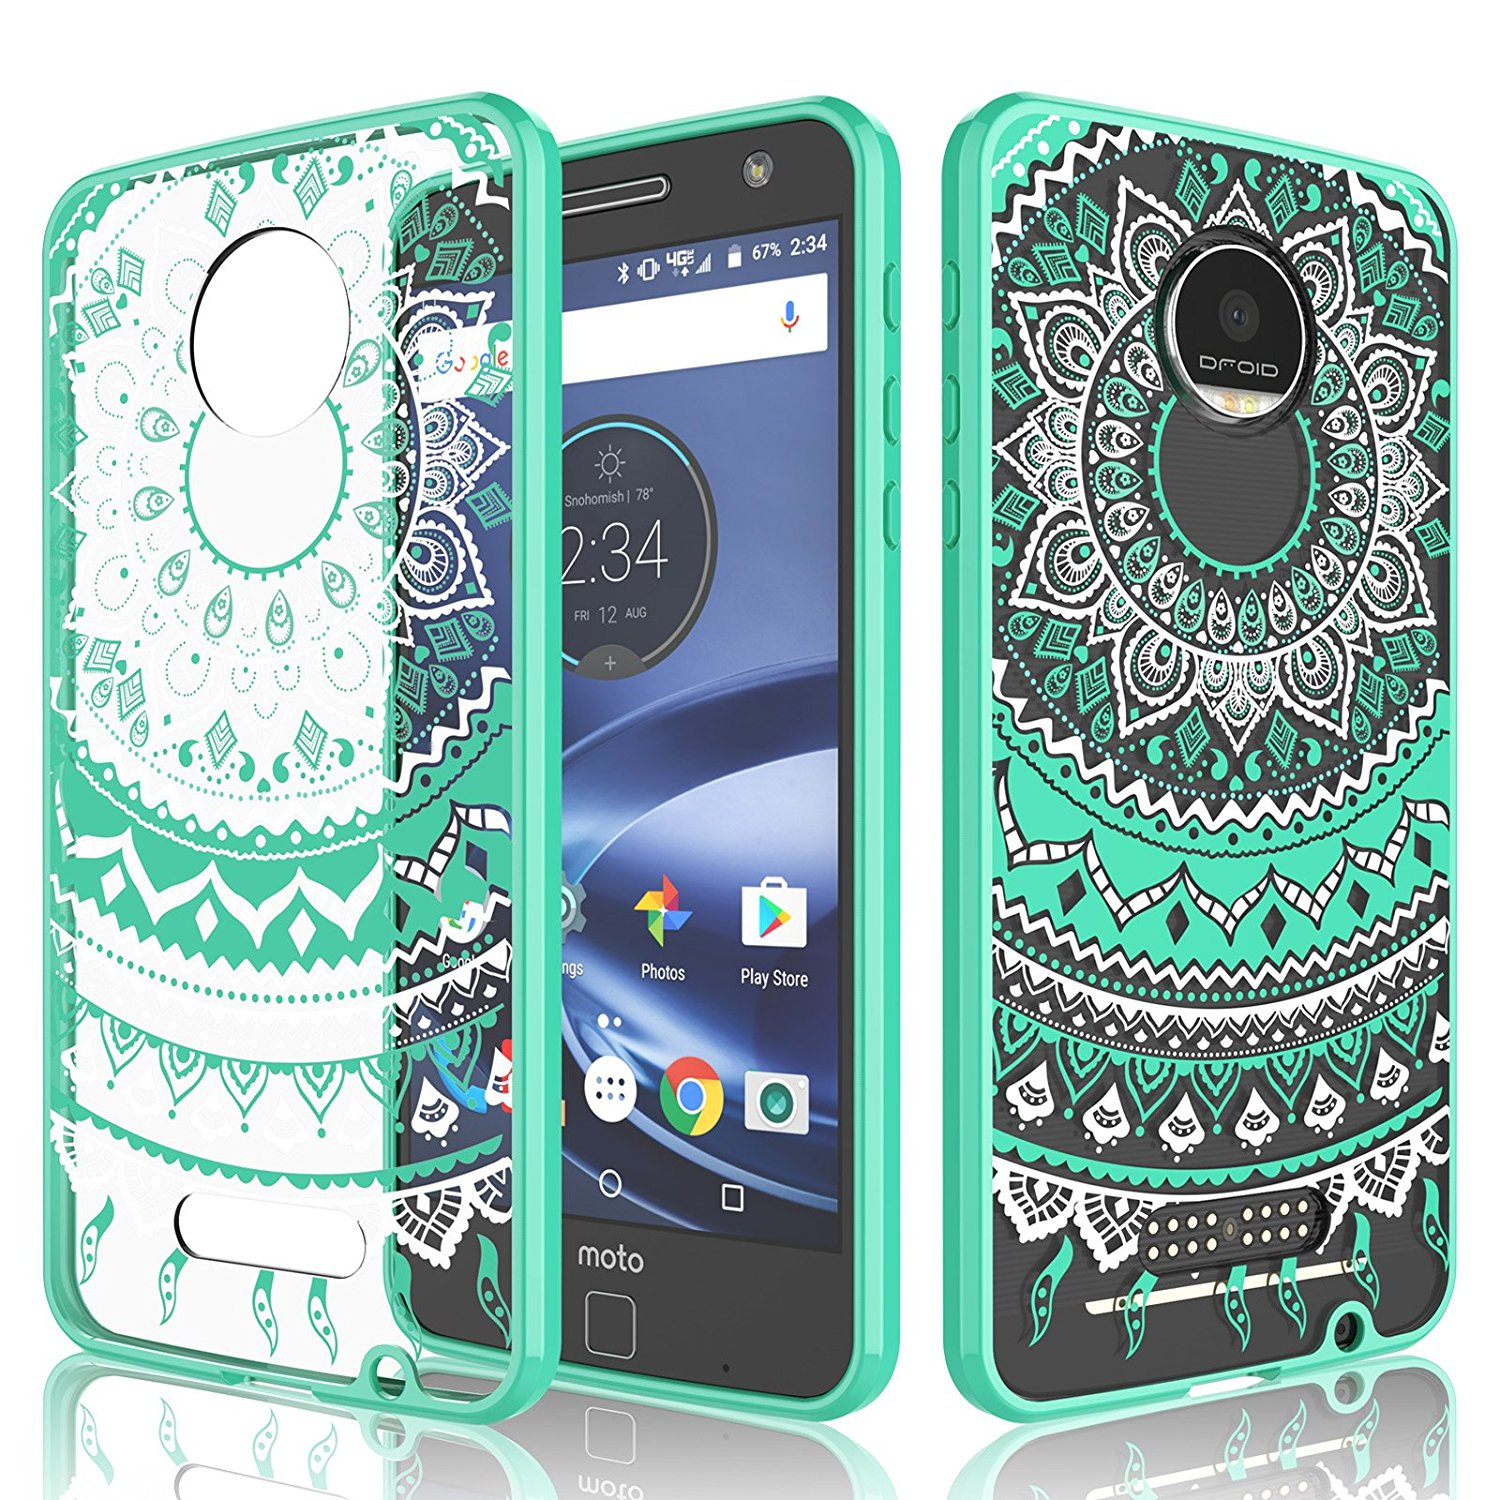 Moto Z Play Case, Motorola Moto Z Play Case For Girls, Tekcoo [TFlower] Transparent Cute Shock Absorbing Ultra Thin Clear Hard TPU Skin Scratch-Proof Bumper Cases For Moto Z Play Droid -Turquoise